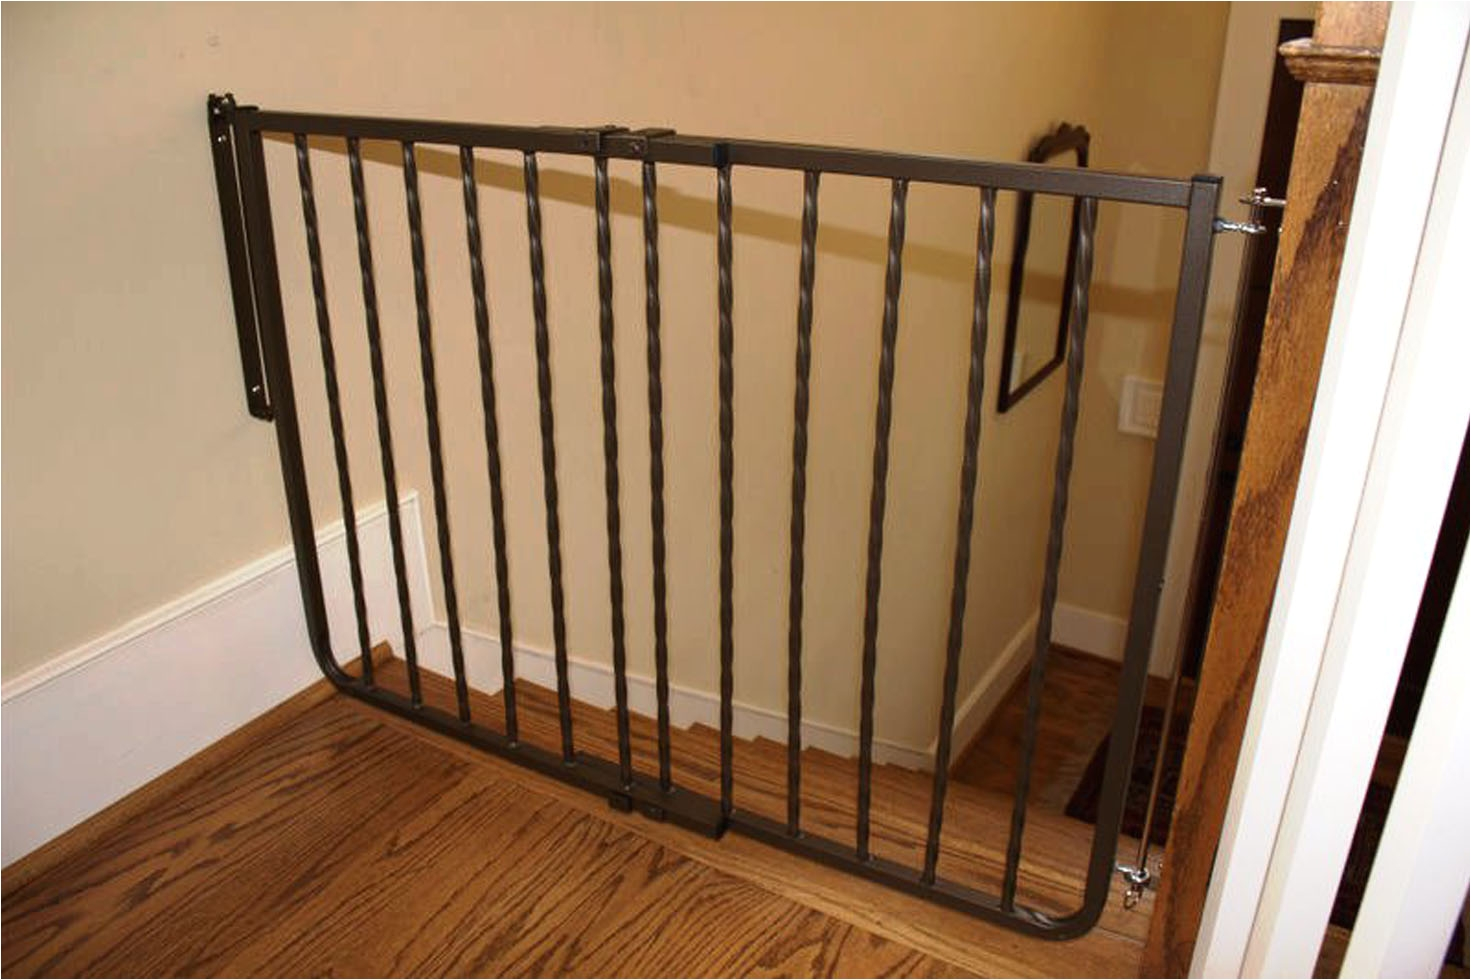 Decorative Baby Gates For Stairs Wrought Iron Decor Gate Baby Gates Safety  Gate Cardinal Gates